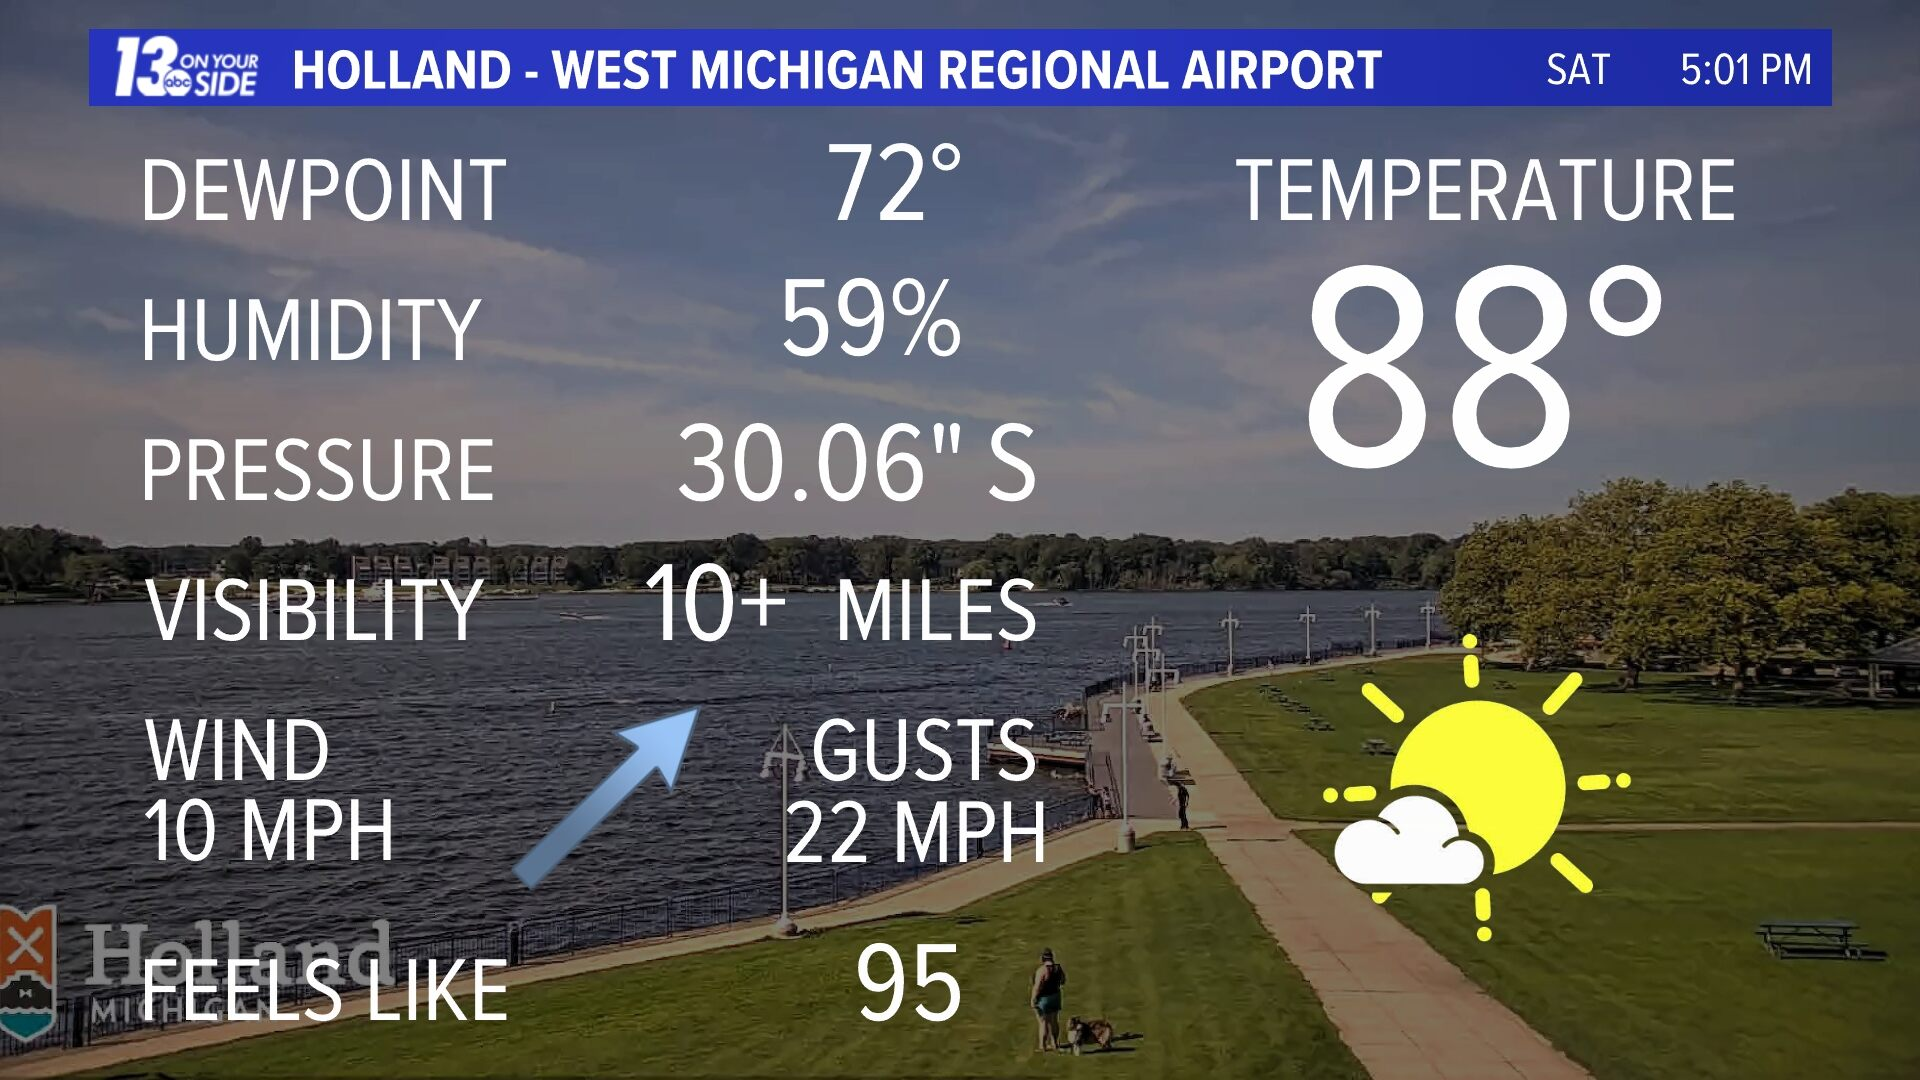 Holland-West Michigan Regional Airport